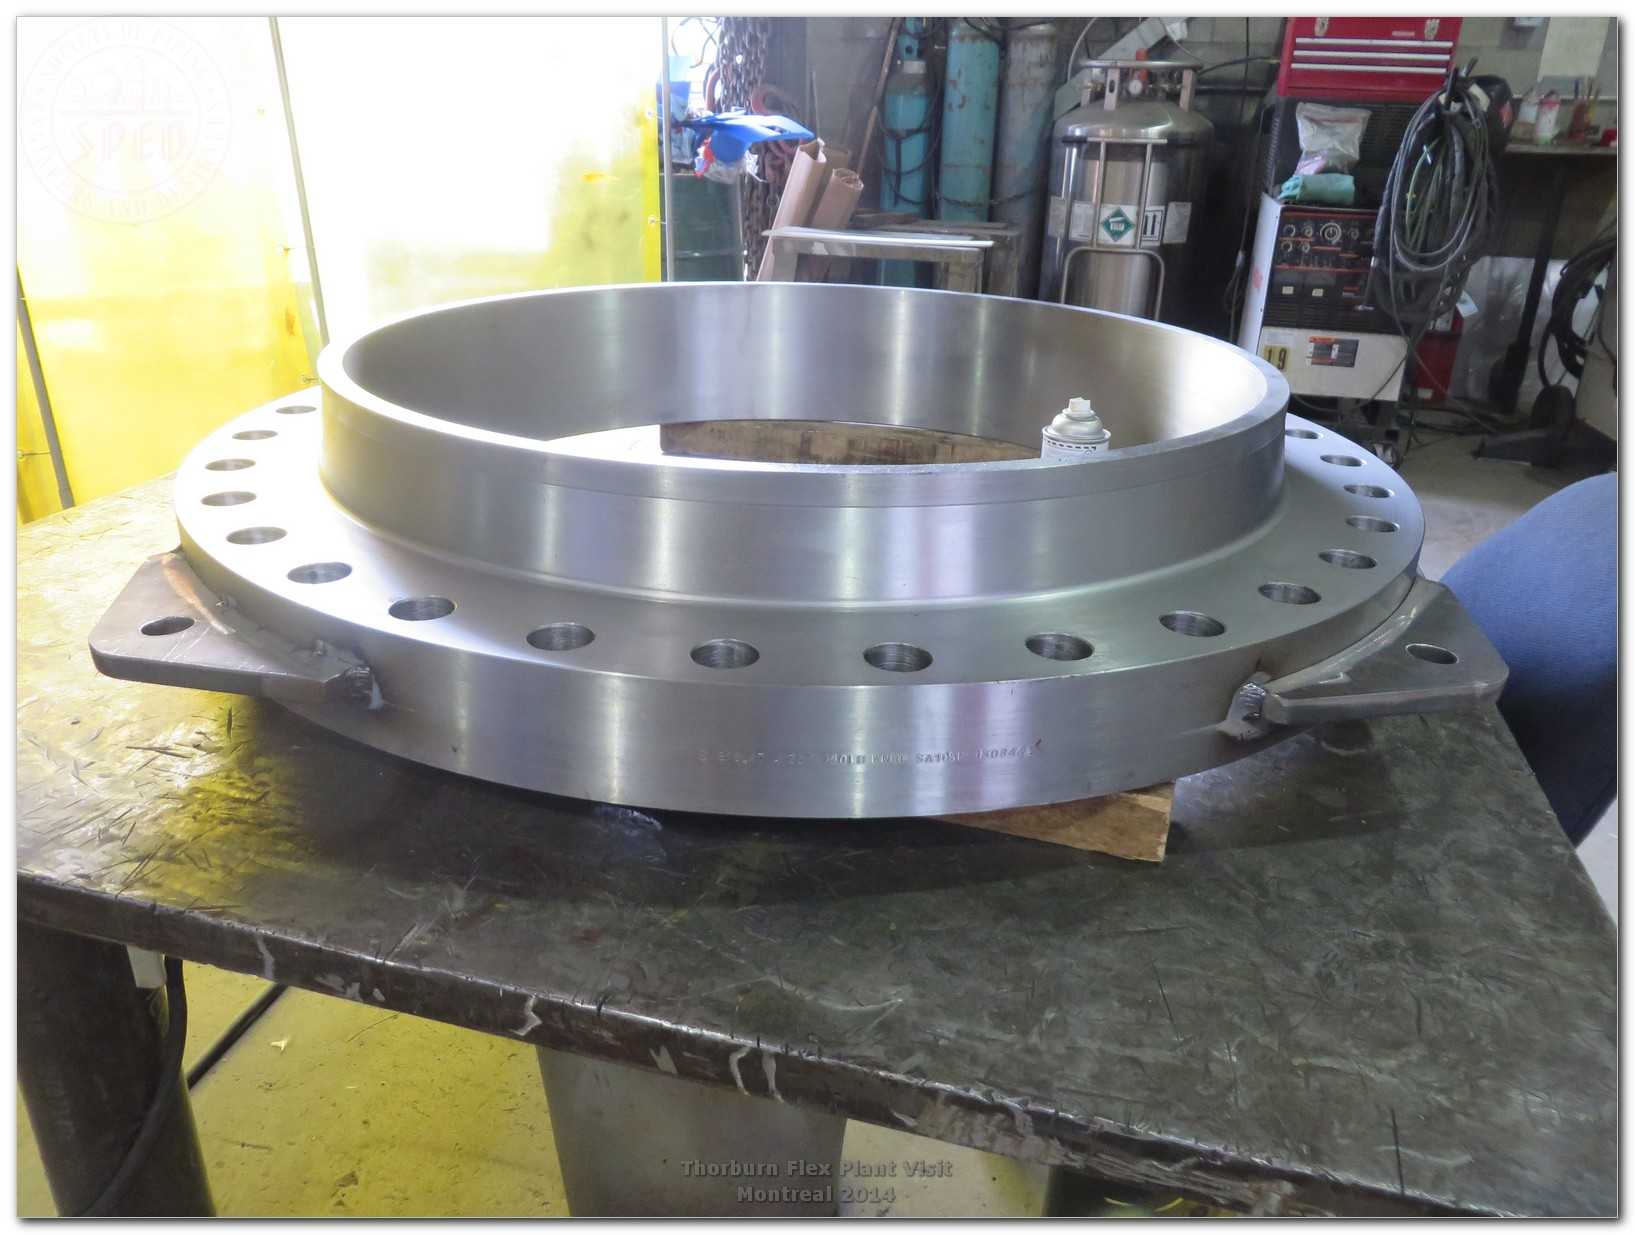 Forged flanges 36″NPS,B16.47 Series A,with tie rods lugs ready for welding